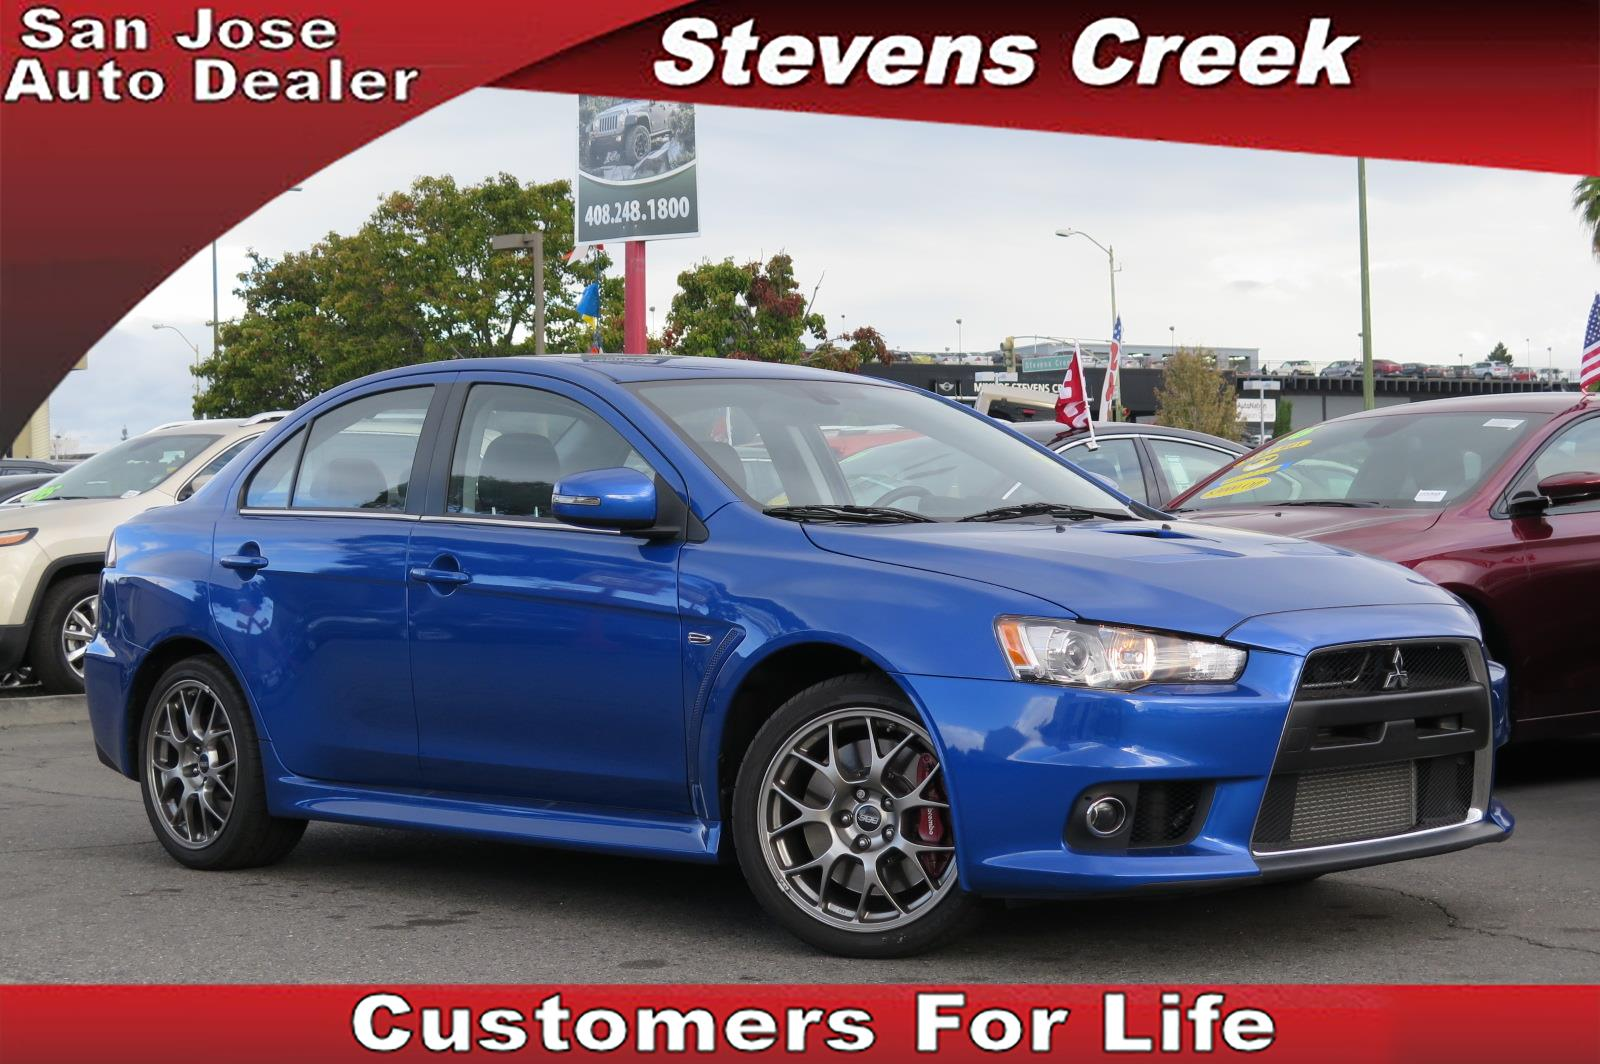 2015 MITSUBISHI LANCER EVOLUTION EVOLUTION MR blue 2l inline 4 automatic power windows  rain s